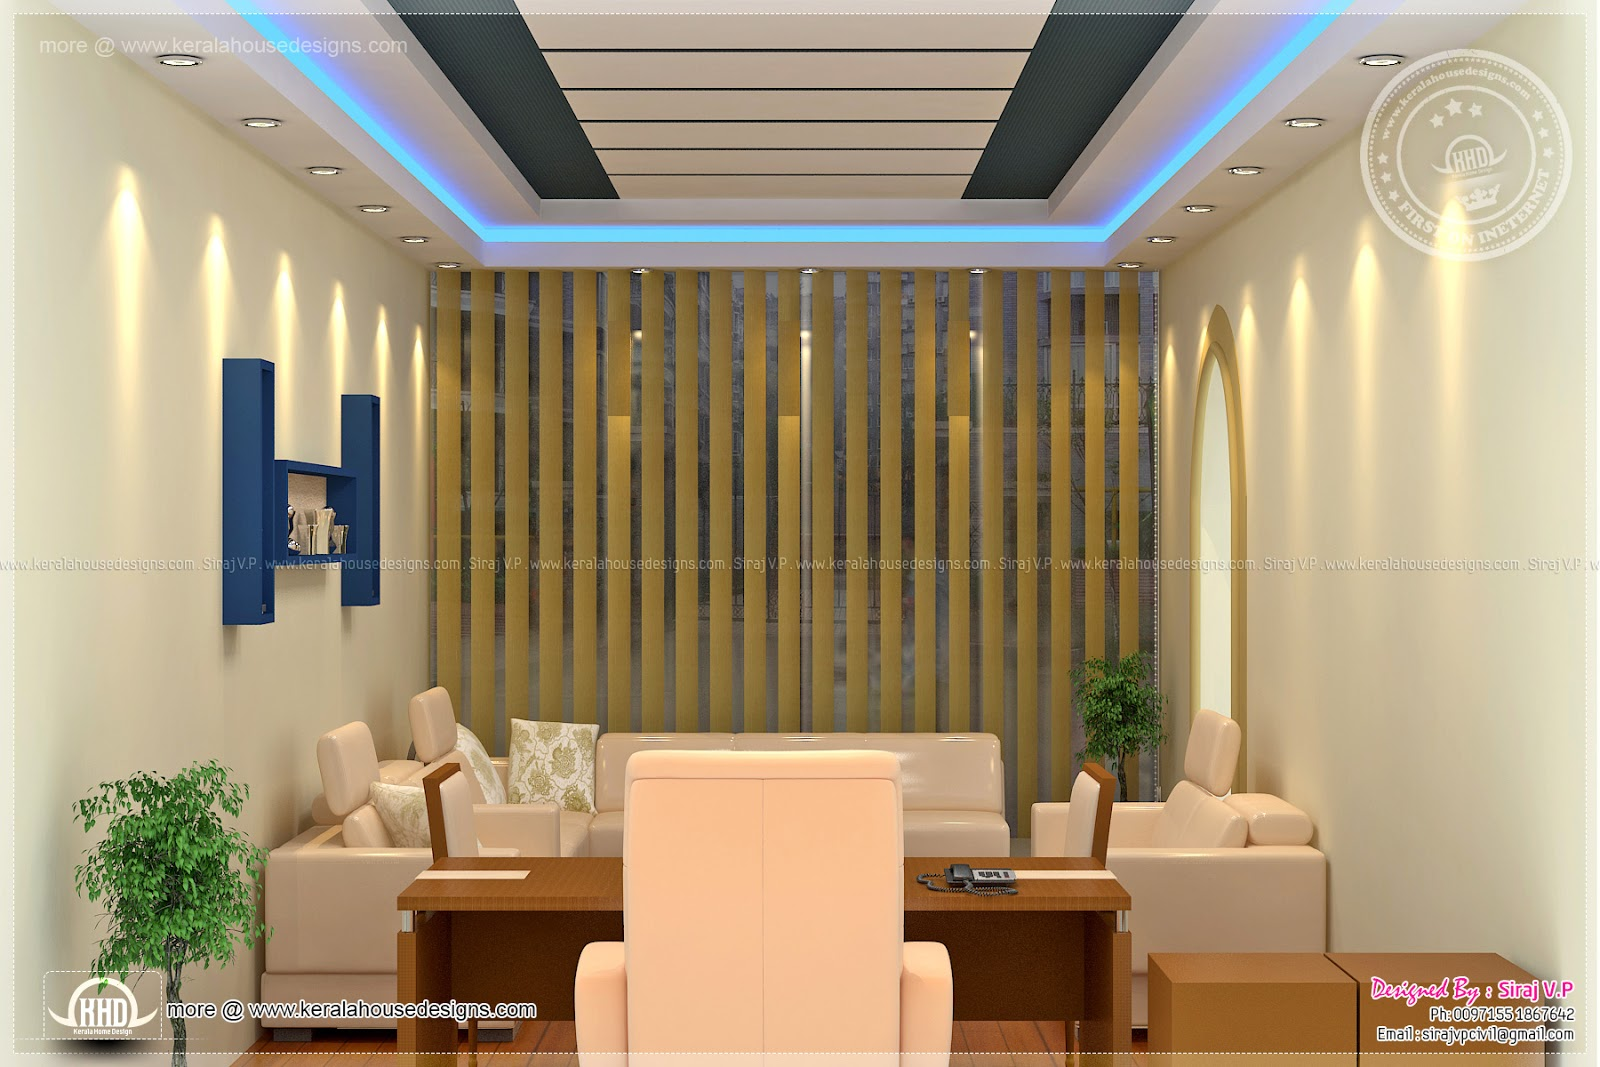 Home office interior design by siraj v p home kerala plans for Home design interior design